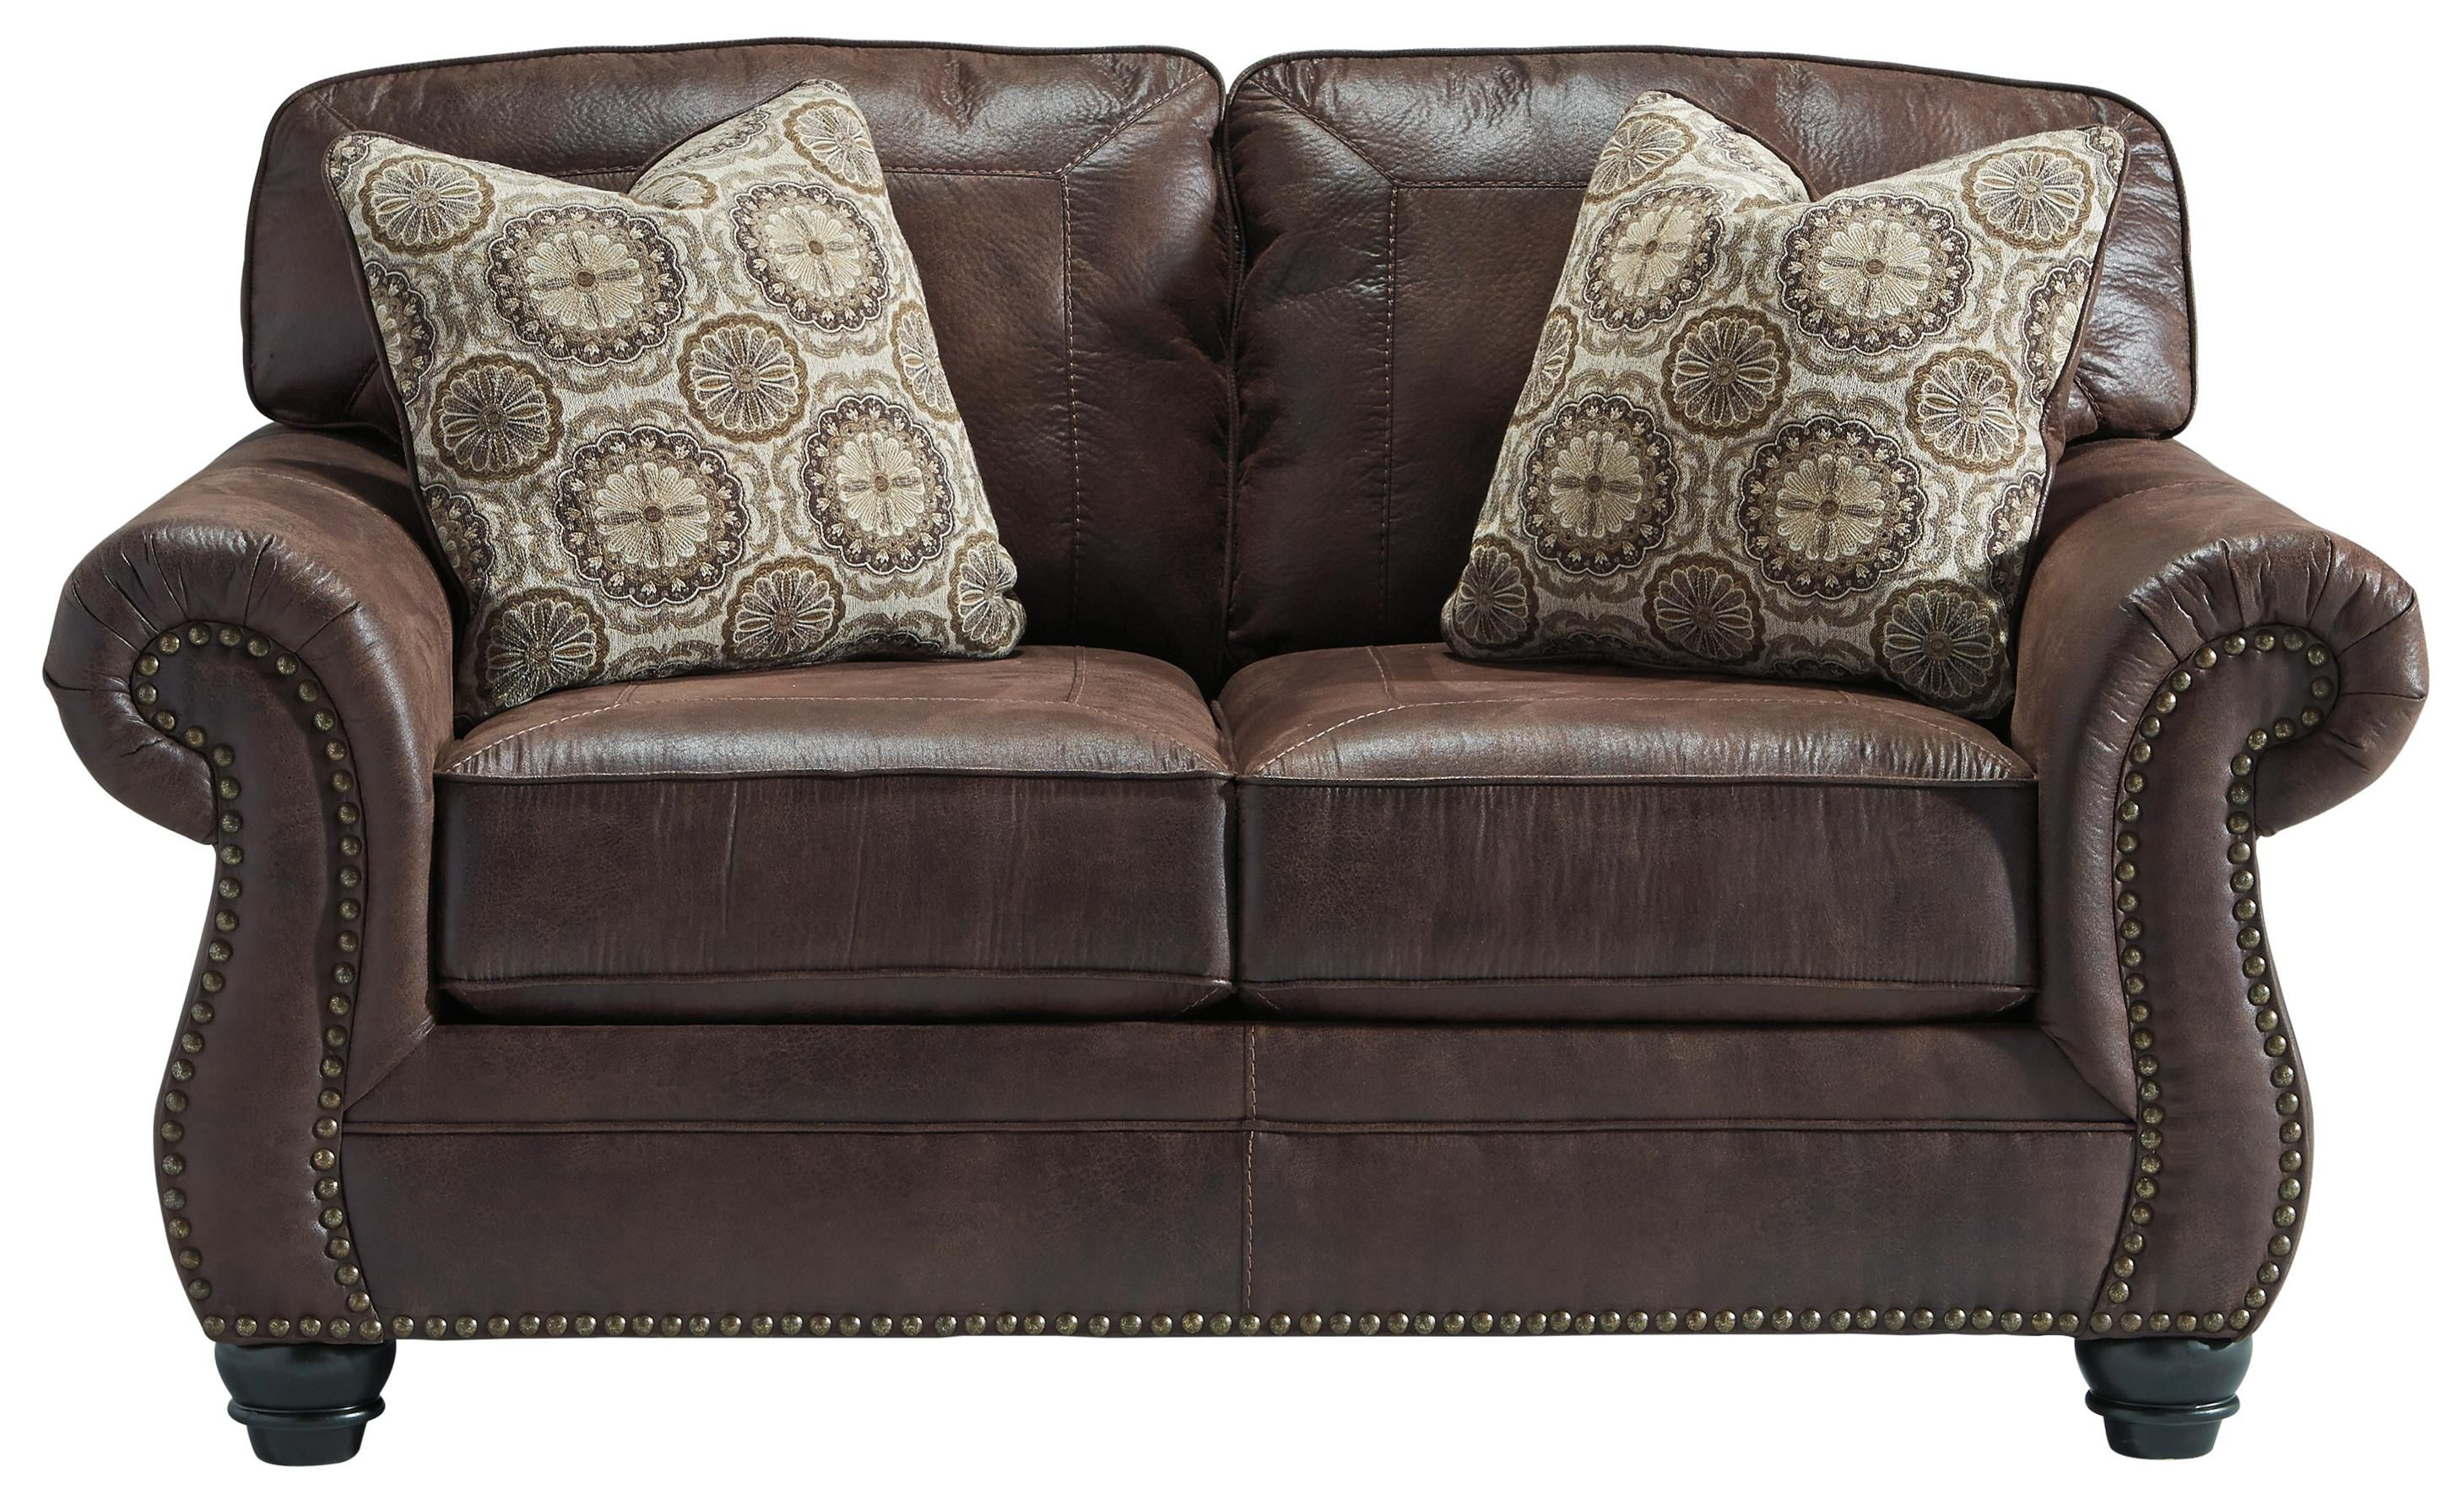 Best Breville Faux Leather Loveseat With Rolled Arms Nailhead 400 x 300